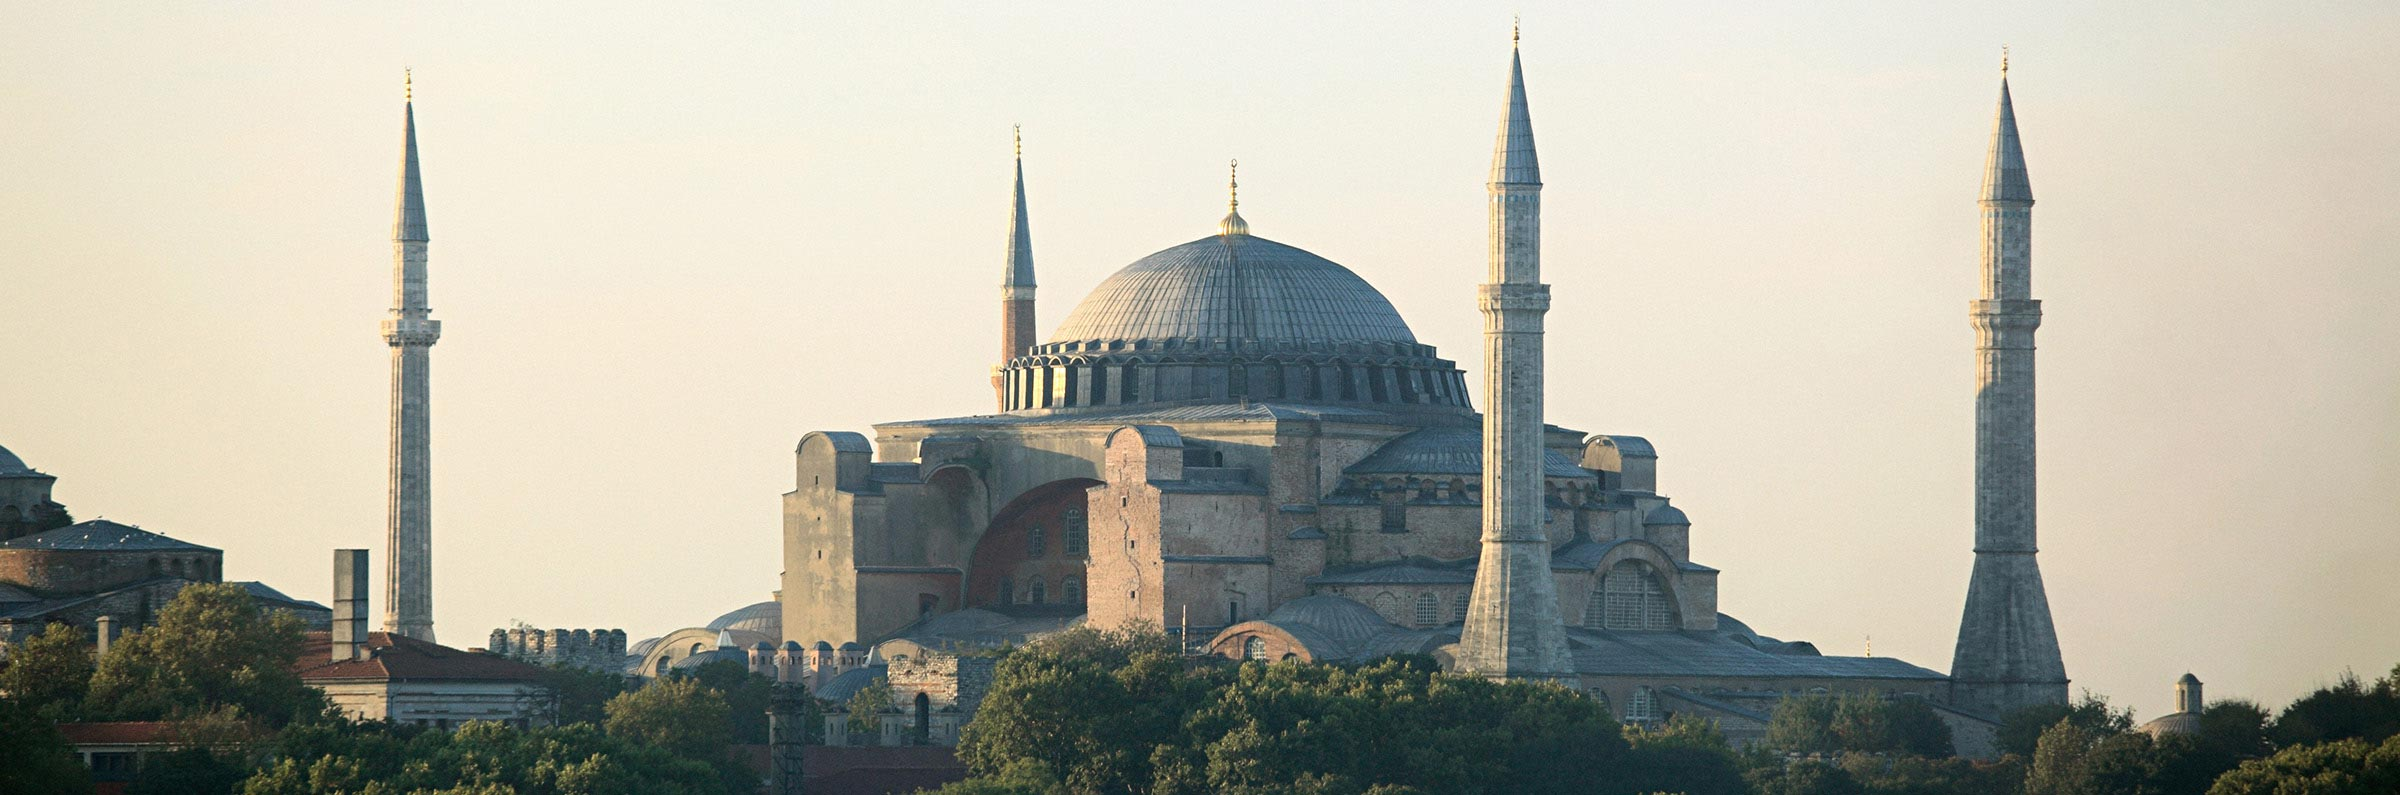 Sights and attractions in Istanbul